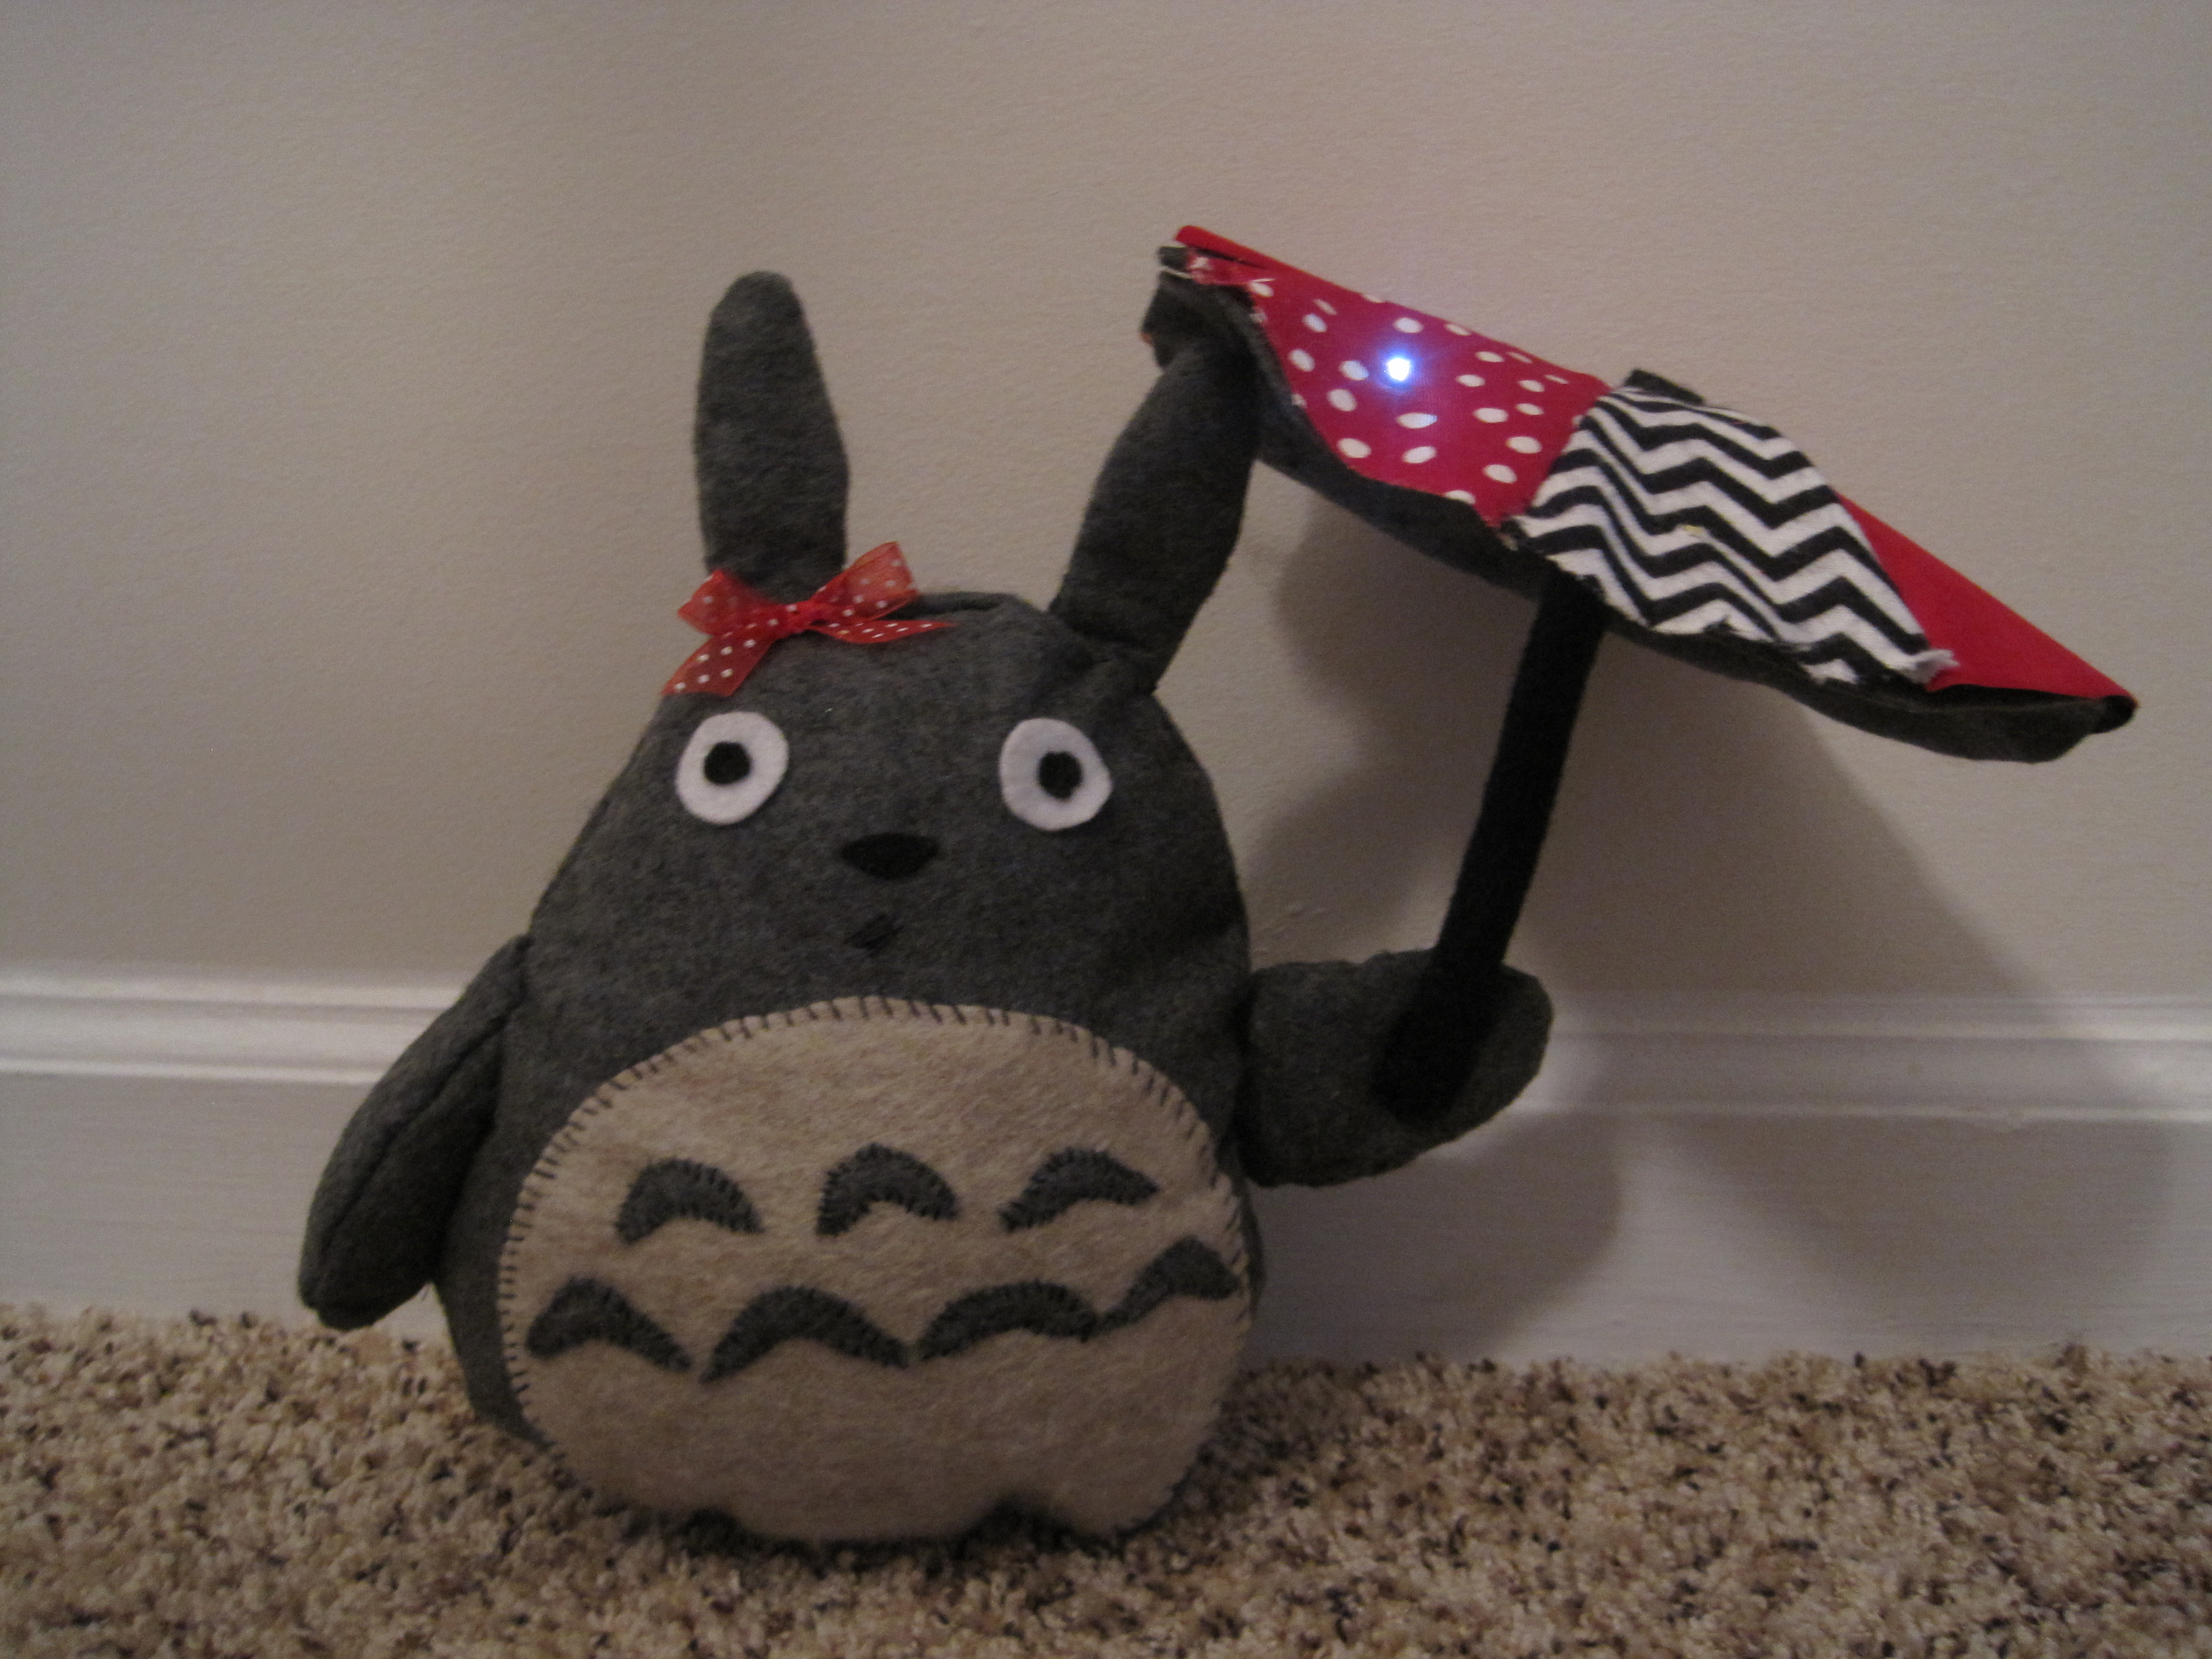 LilyPad Arduino Totoro Plush with Umbrella